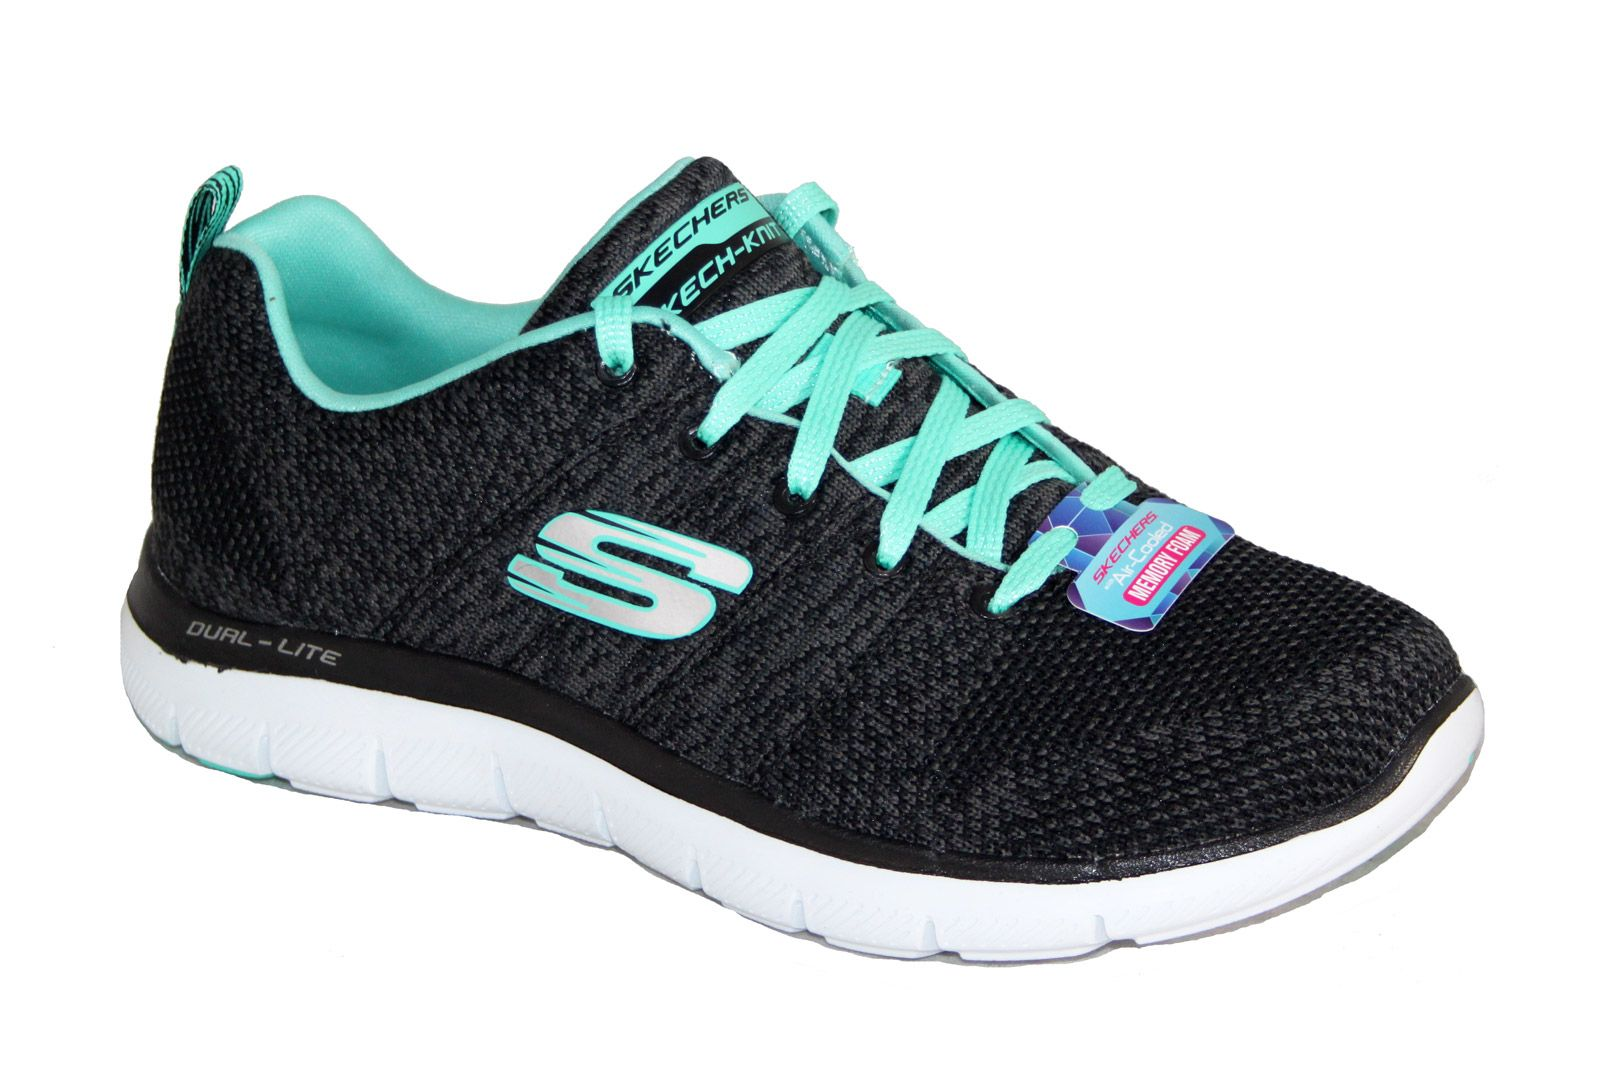 construcción flojo ciervo  Skechers 12756 Flex Appeal 2.0 High Energy Black/Aqua | Skechers - Womens |  China Blue Shoes